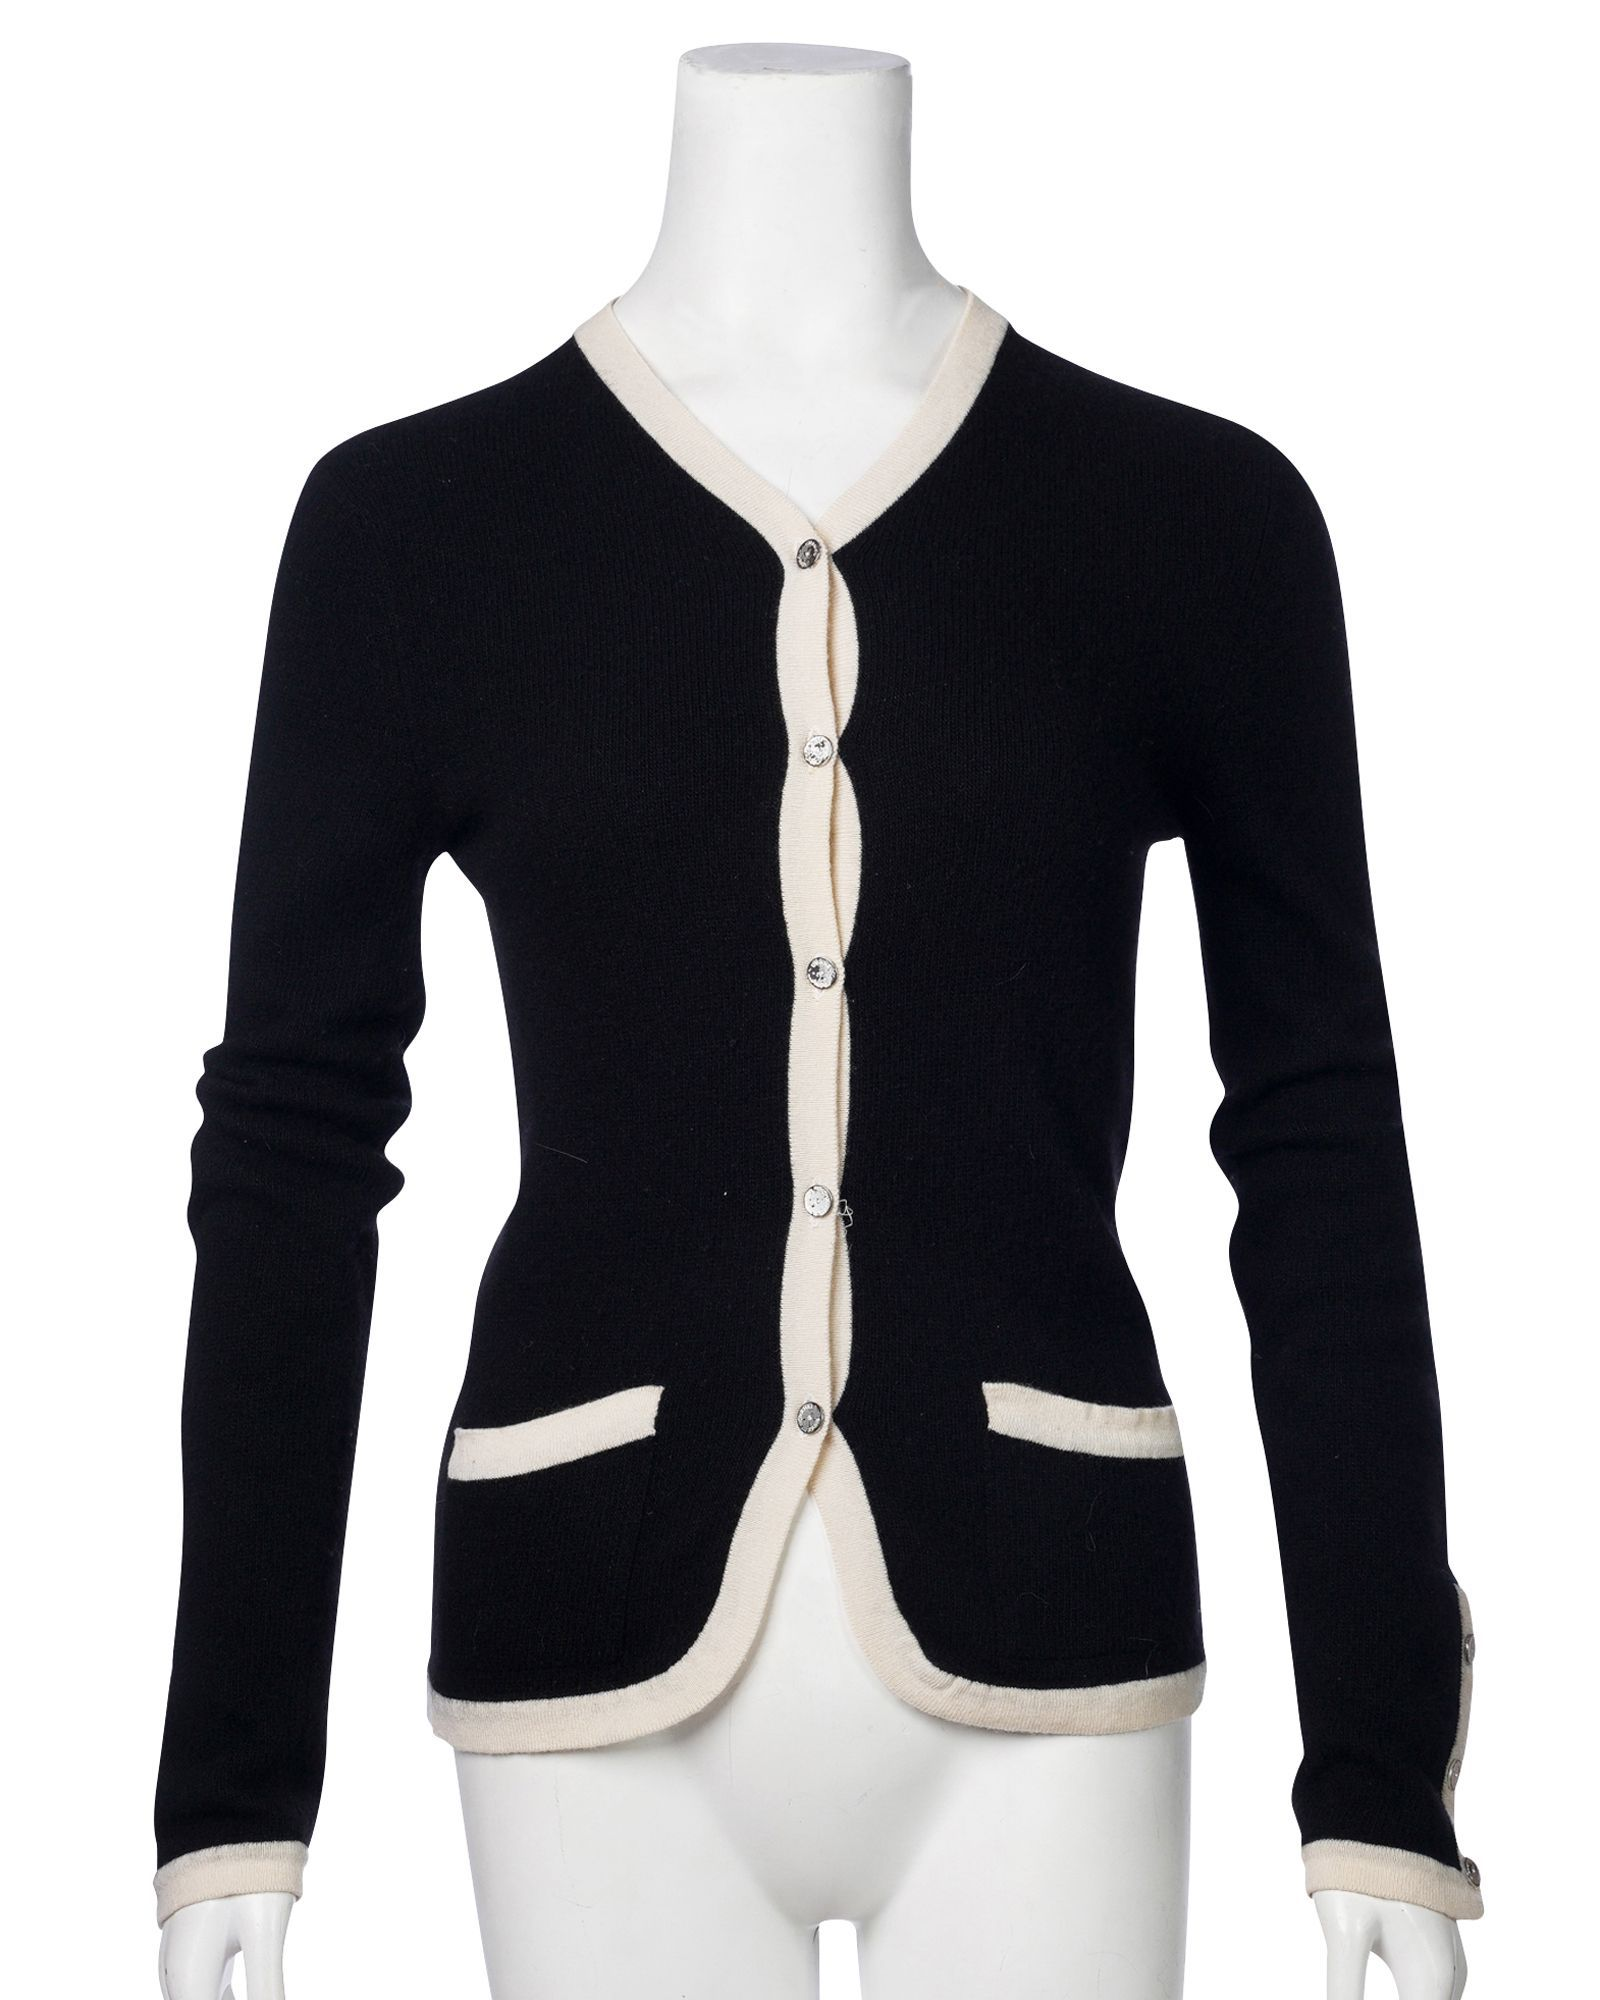 Chanel Vintage Black And White Cardigan -Pre Owned Condition Good